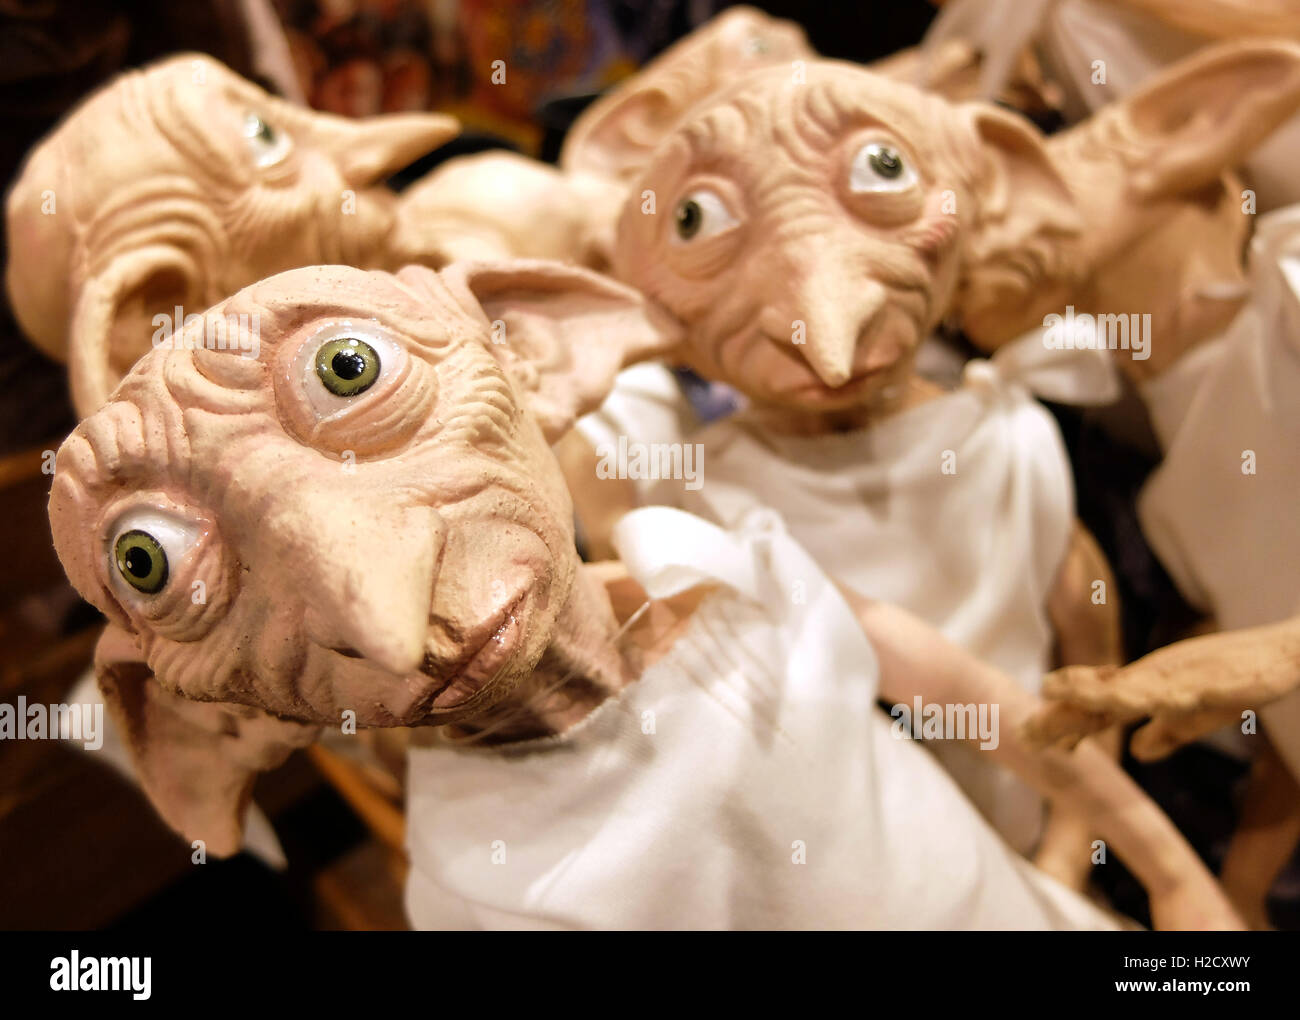 The Making of Harry Potter Warner Bros studio Tour, London. Dobby dolls in gift shop - Stock Image